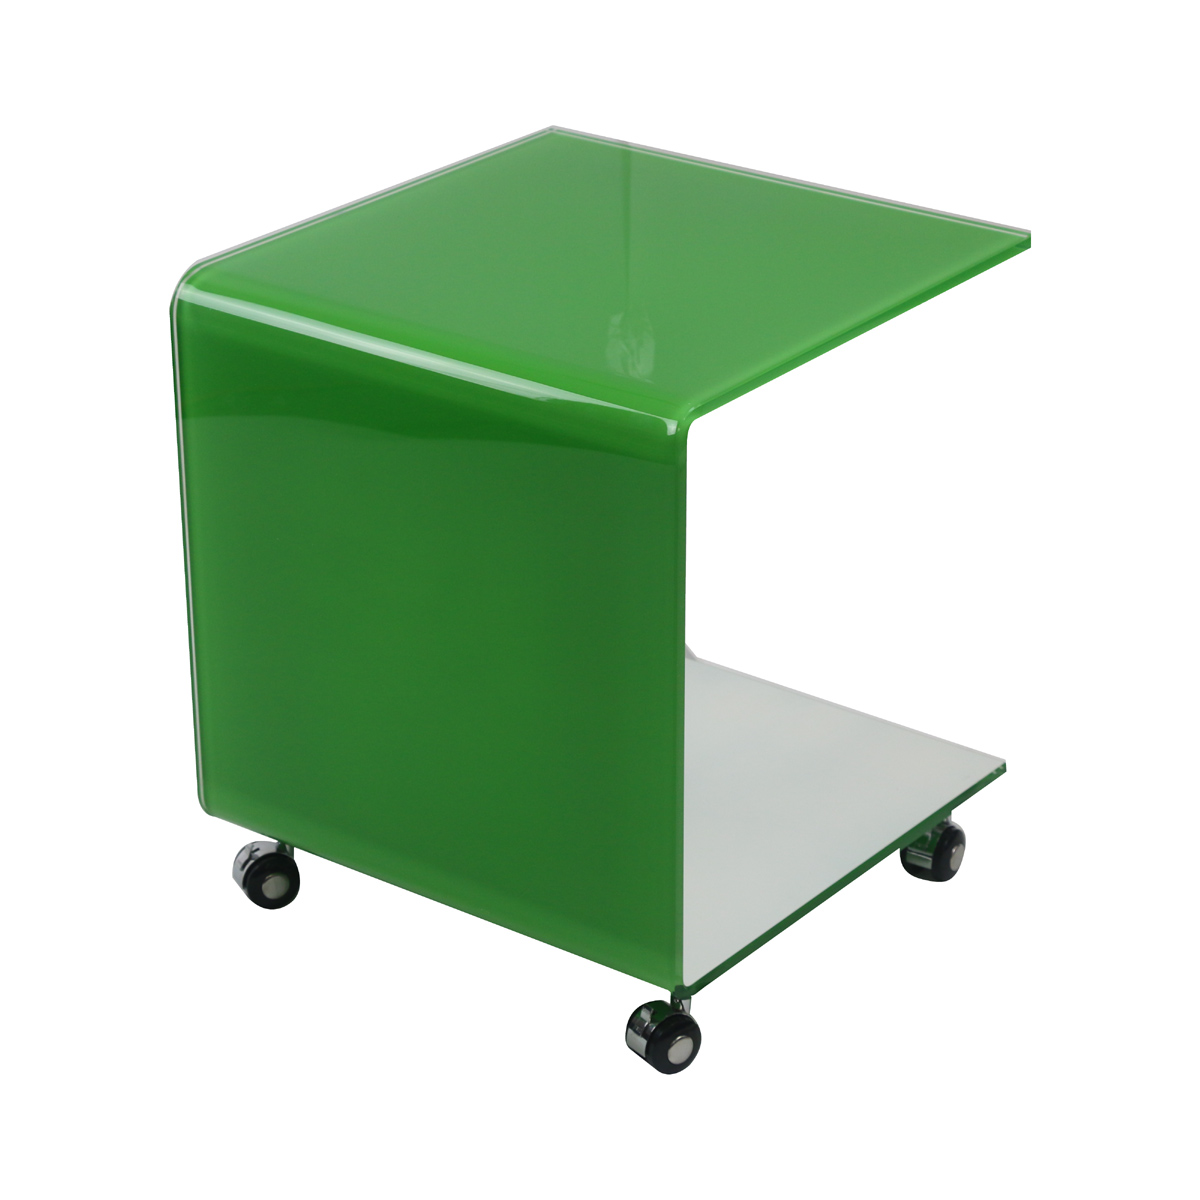 coral trolley accent table green glass end tables grn quick view chestnut mango wood furniture world market kmart camping barn dining tile patio set pretty round tablecloths asian